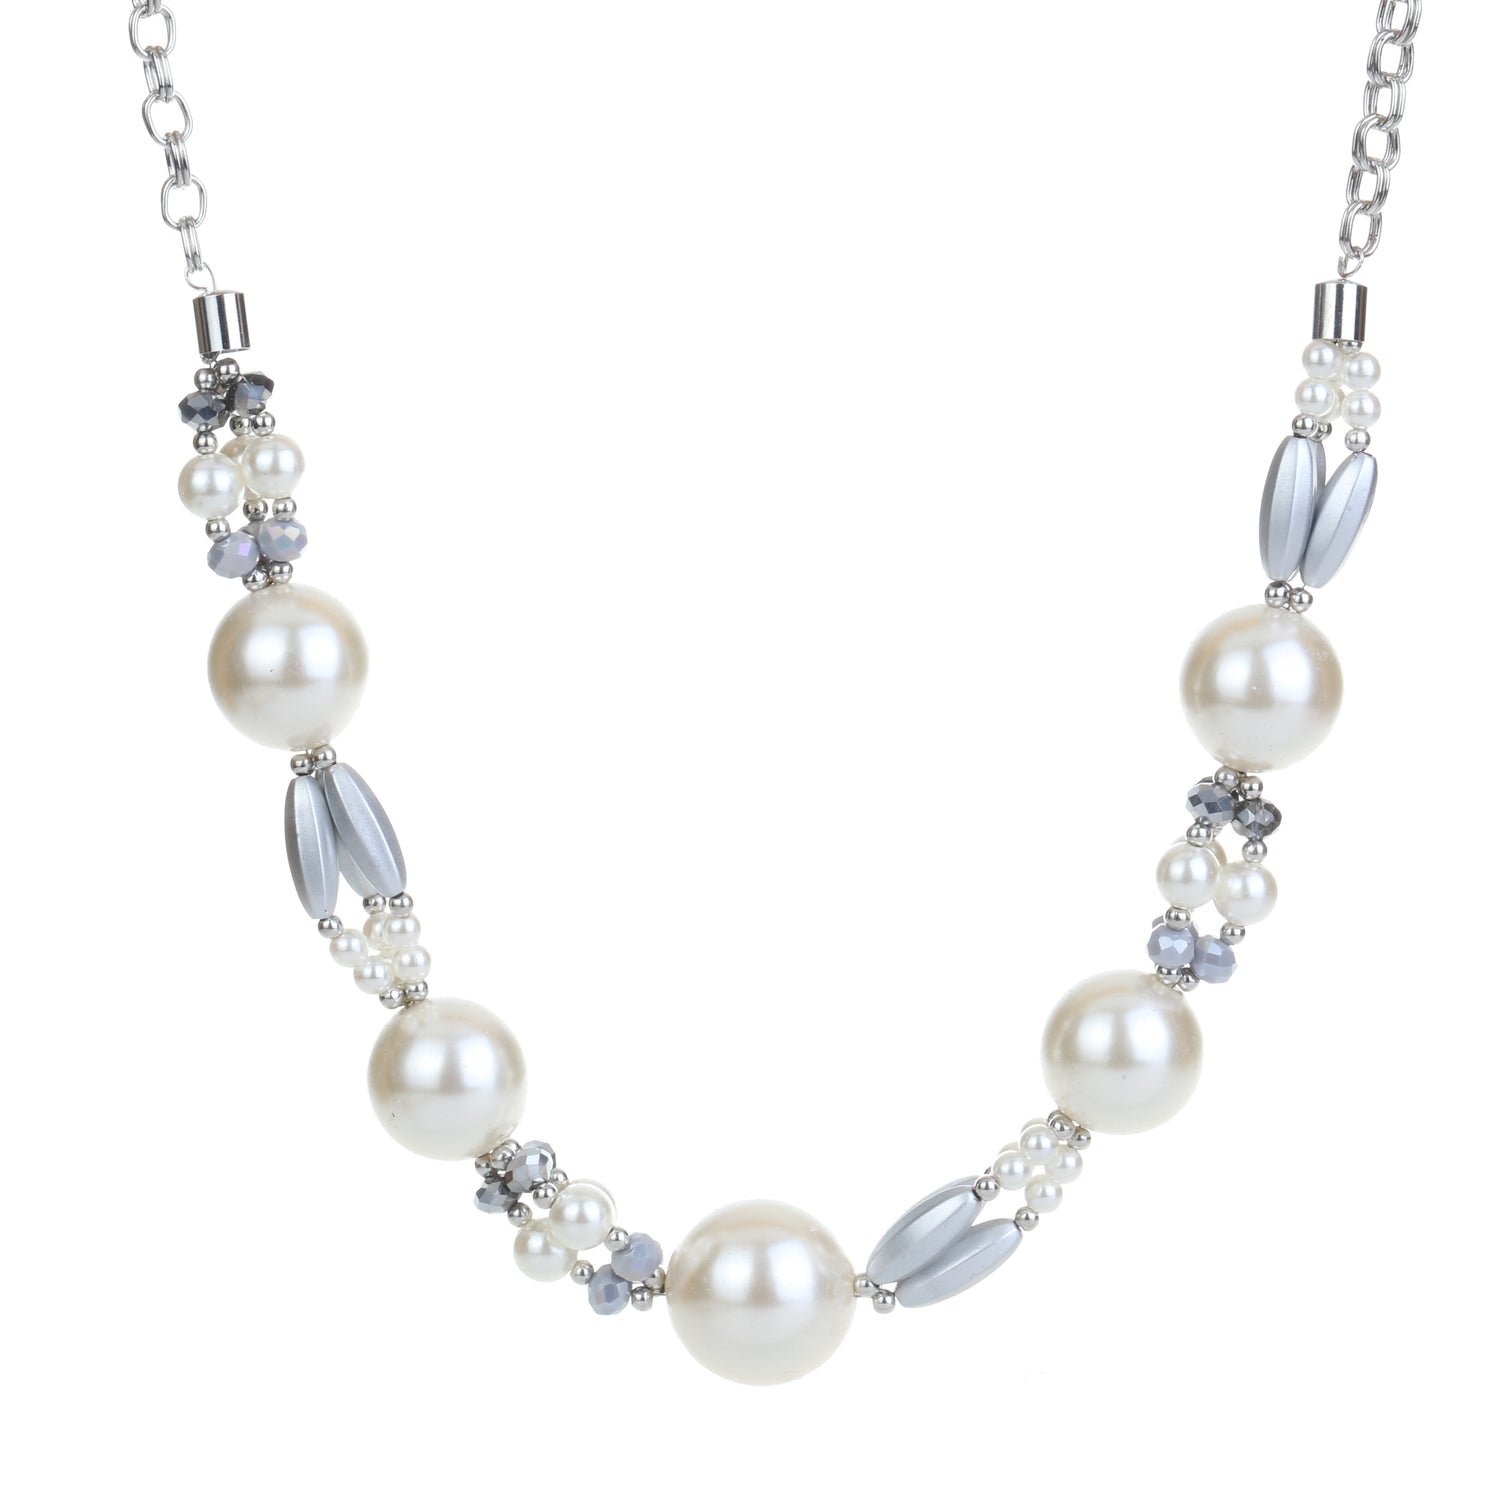 Statement Pearl Detail Necklace